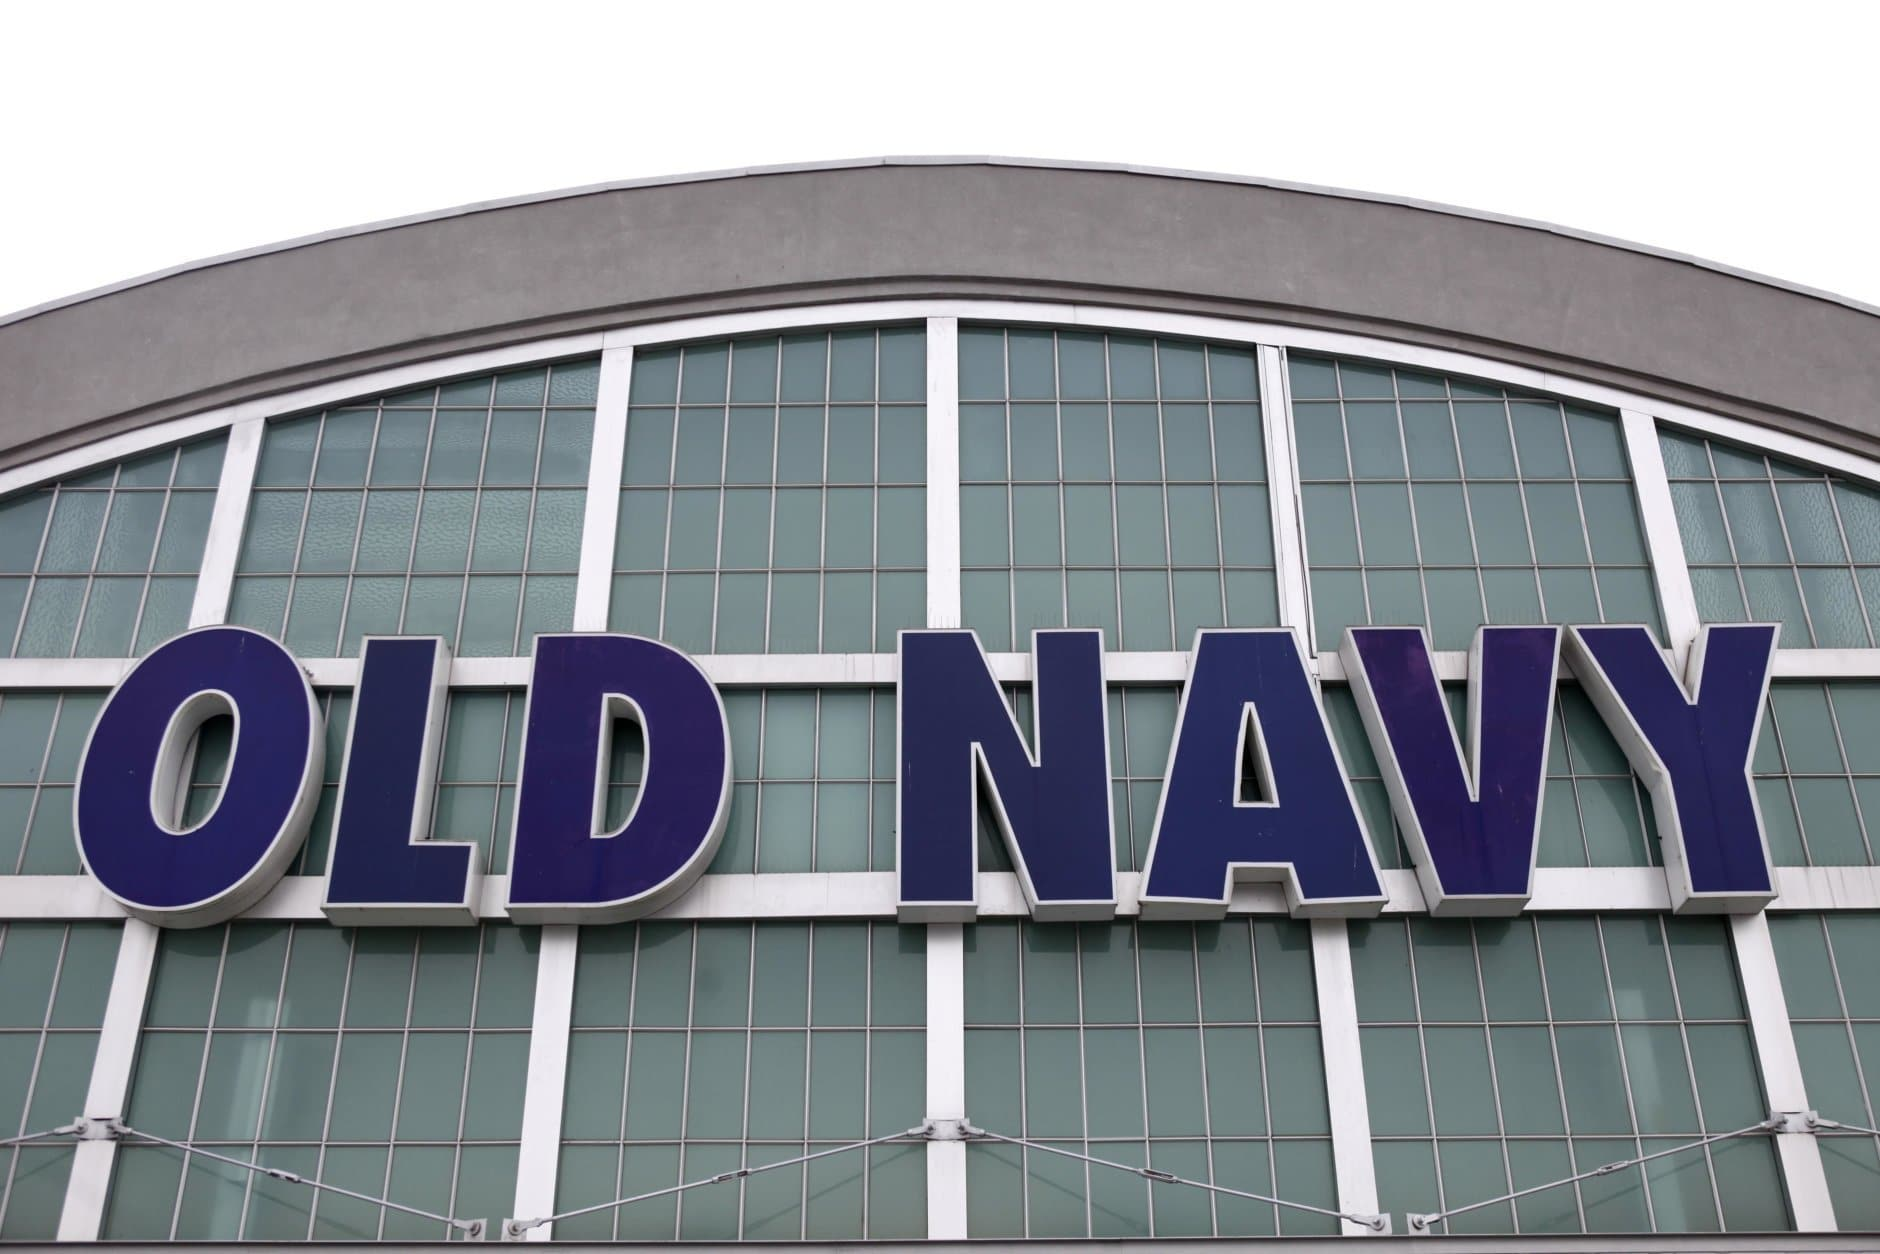 An Old Navy Store is seen in Paramus, N.J., Wednesday, Feb. 24, 2010. Gap Inc. said Thursday that strong sales at its lower-priced Old Navy chain helped its fourth-quarter profit rise 45 percent. (AP Photo/Seth Wenig)